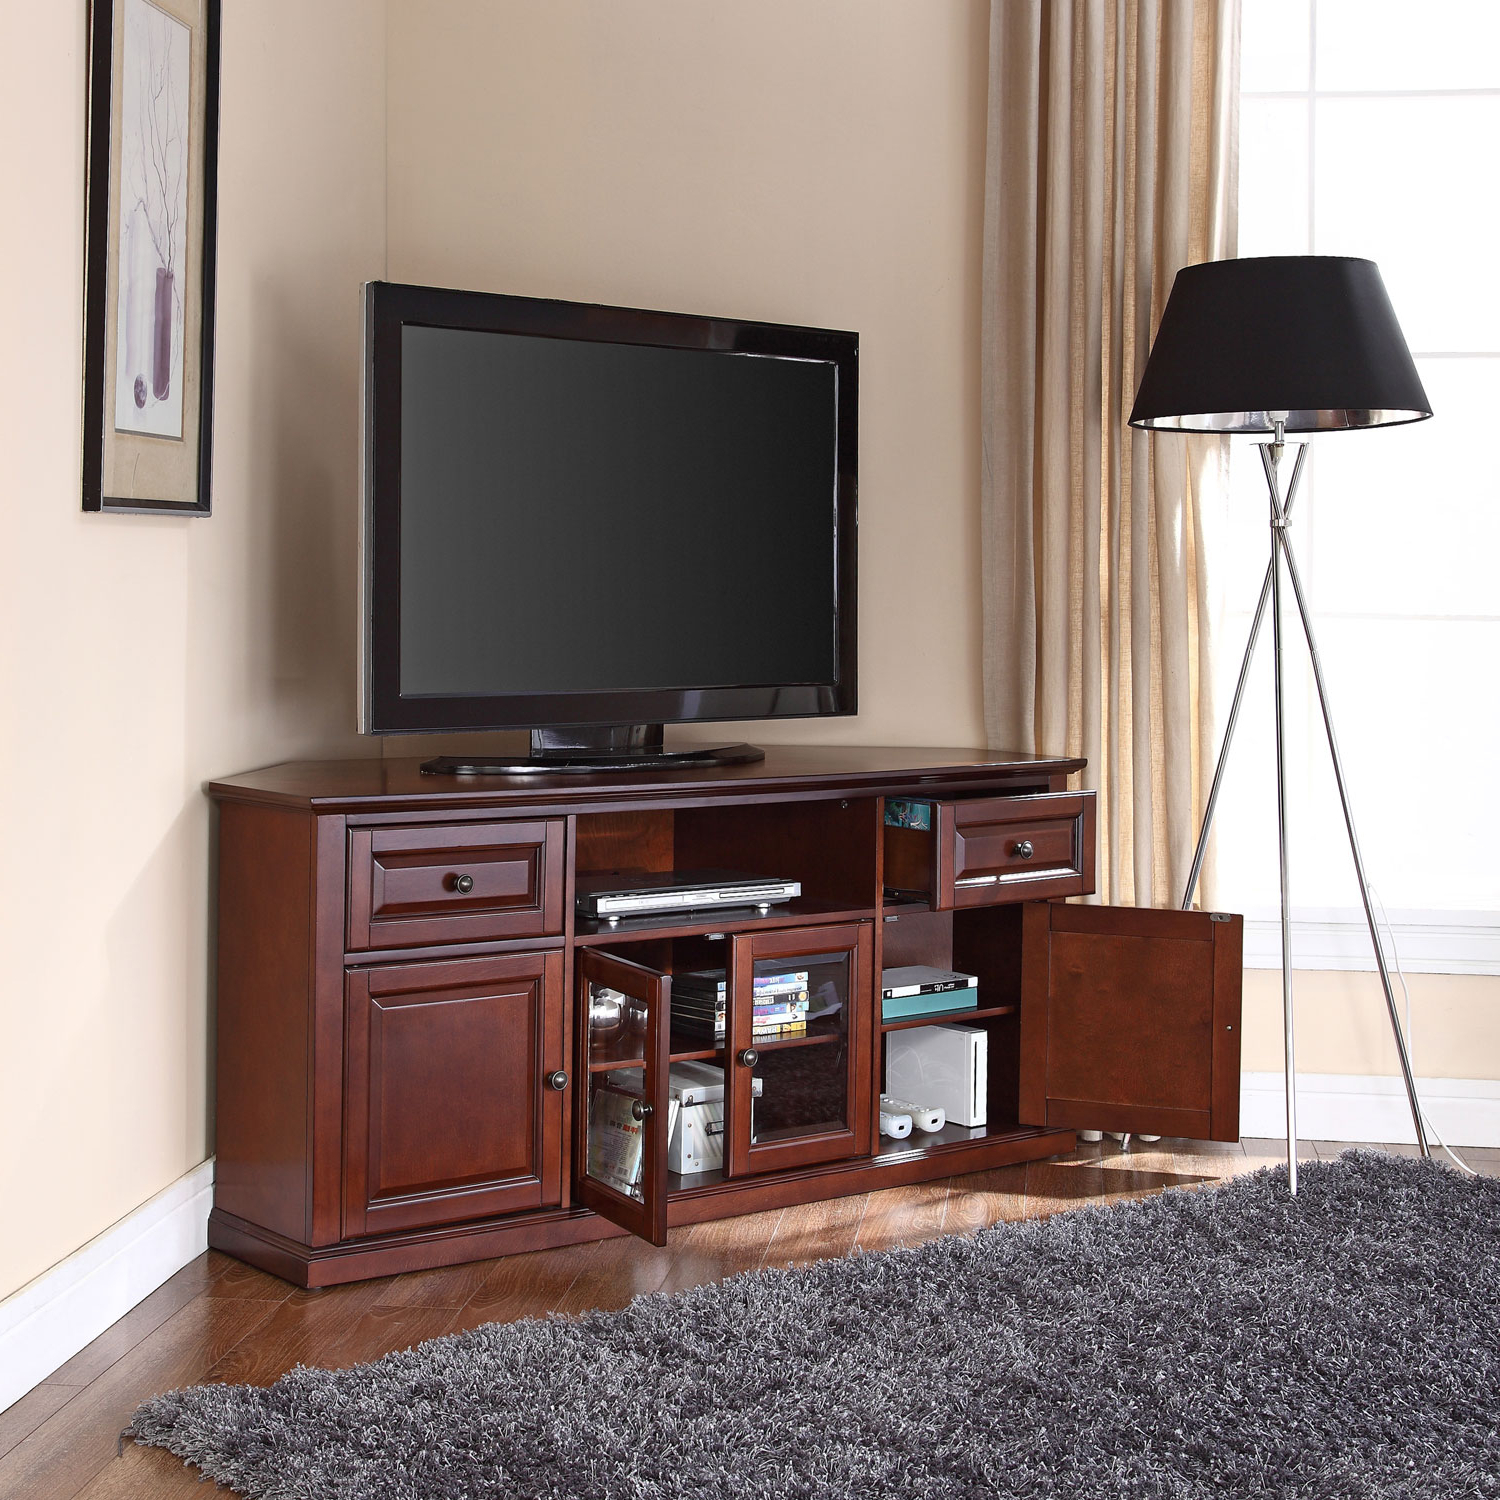 Widely Used Crosley Furniture 60 Inch Corner Tv Stand In Vintage Mahogany With Mahogany Tv Cabinets (View 9 of 20)